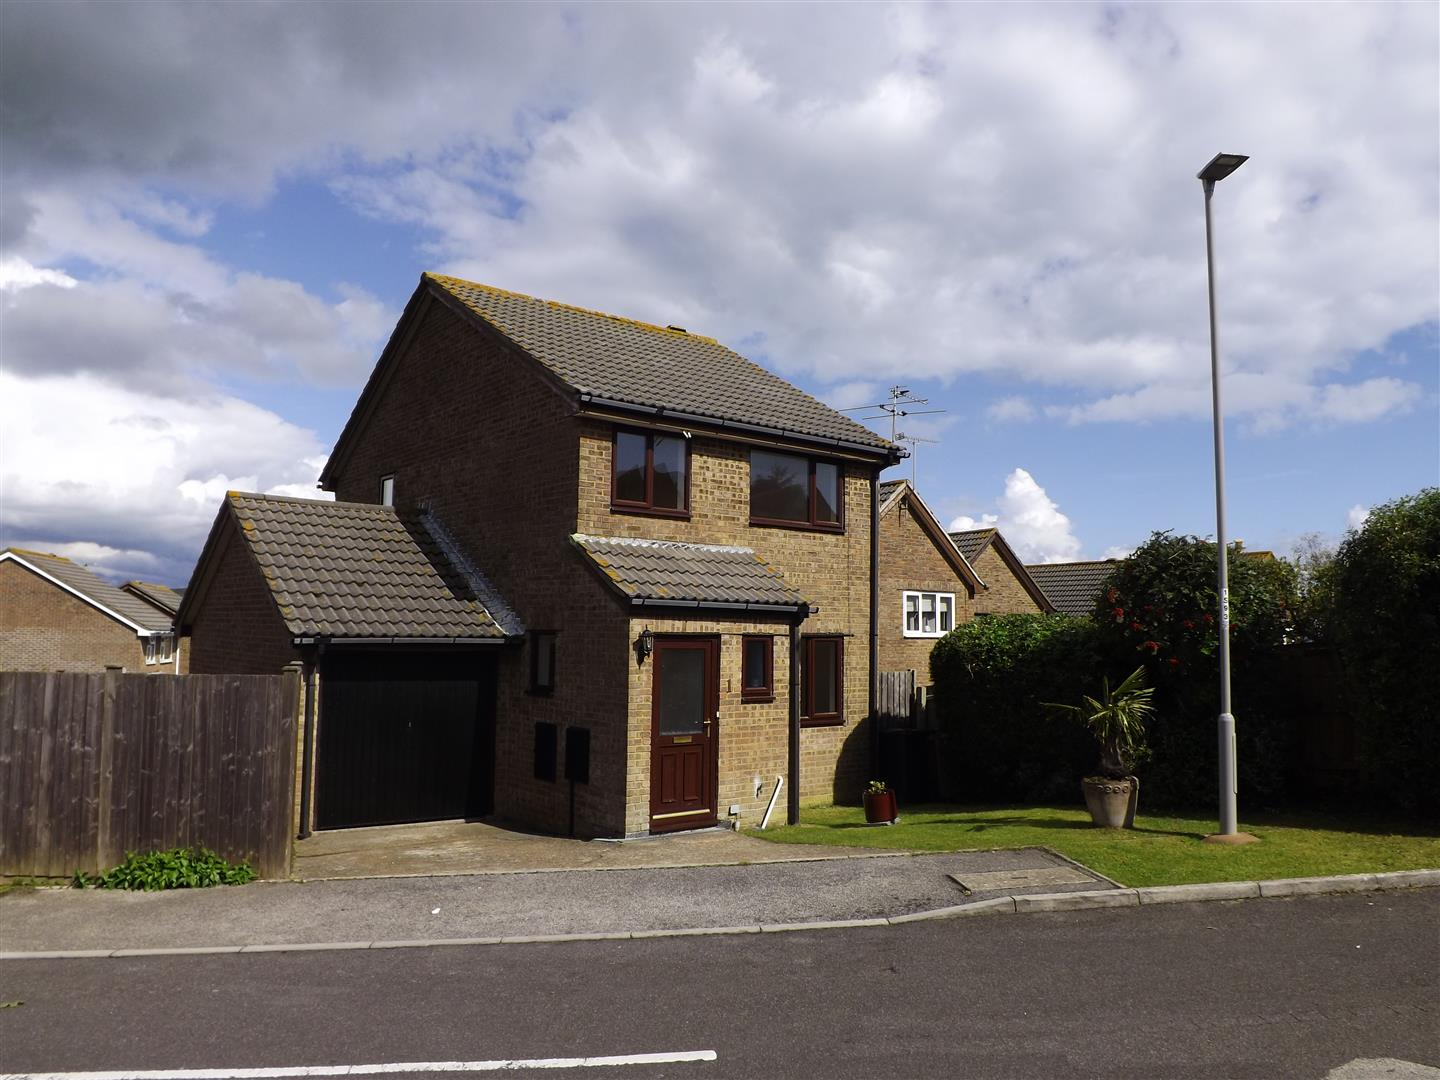 3 Bedrooms Detached House for sale in Shaston Close, Swanage